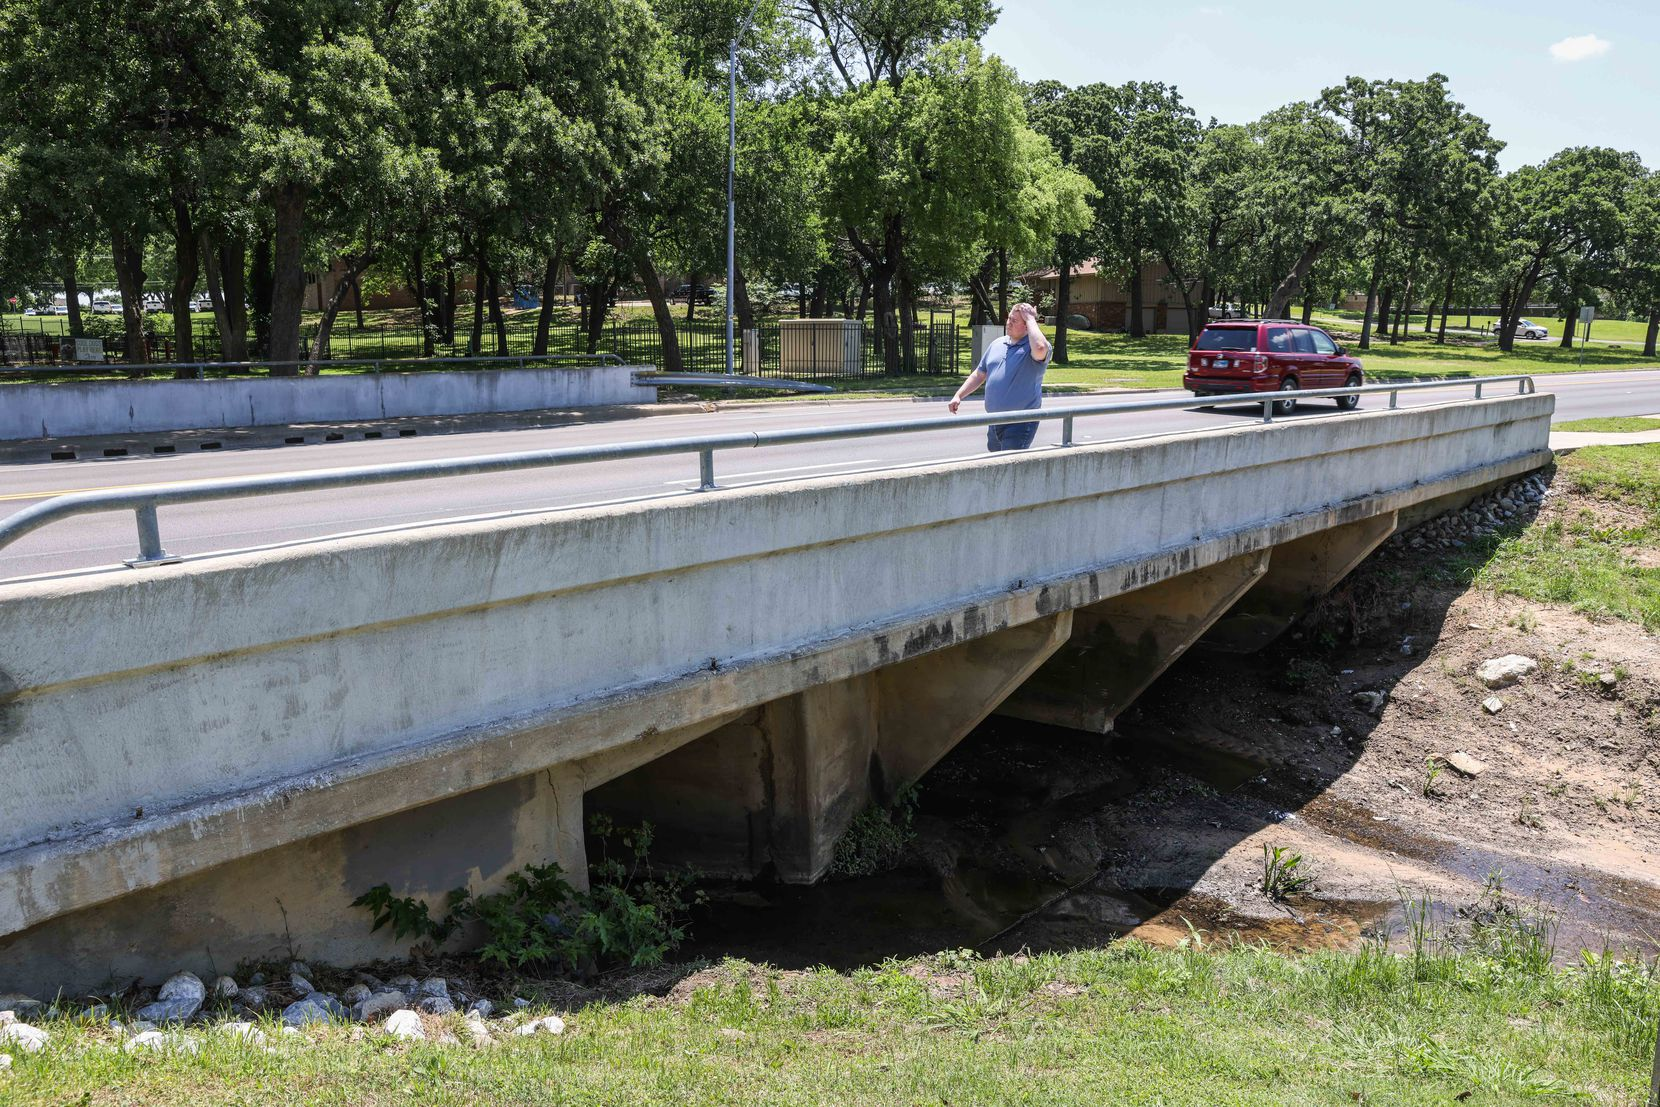 A drainage culvert under a small bridge around the 2100 block near The Arbors Apartments on Forest Ridge in Bedford on Friday, May 14, 2021. Nicholas Lloyd Nelson, a 37-year-old Tarrant County man suspect, admitted to setting off a homemade bomb last month at this location. (Lola Gomez/The Dallas Morning News)